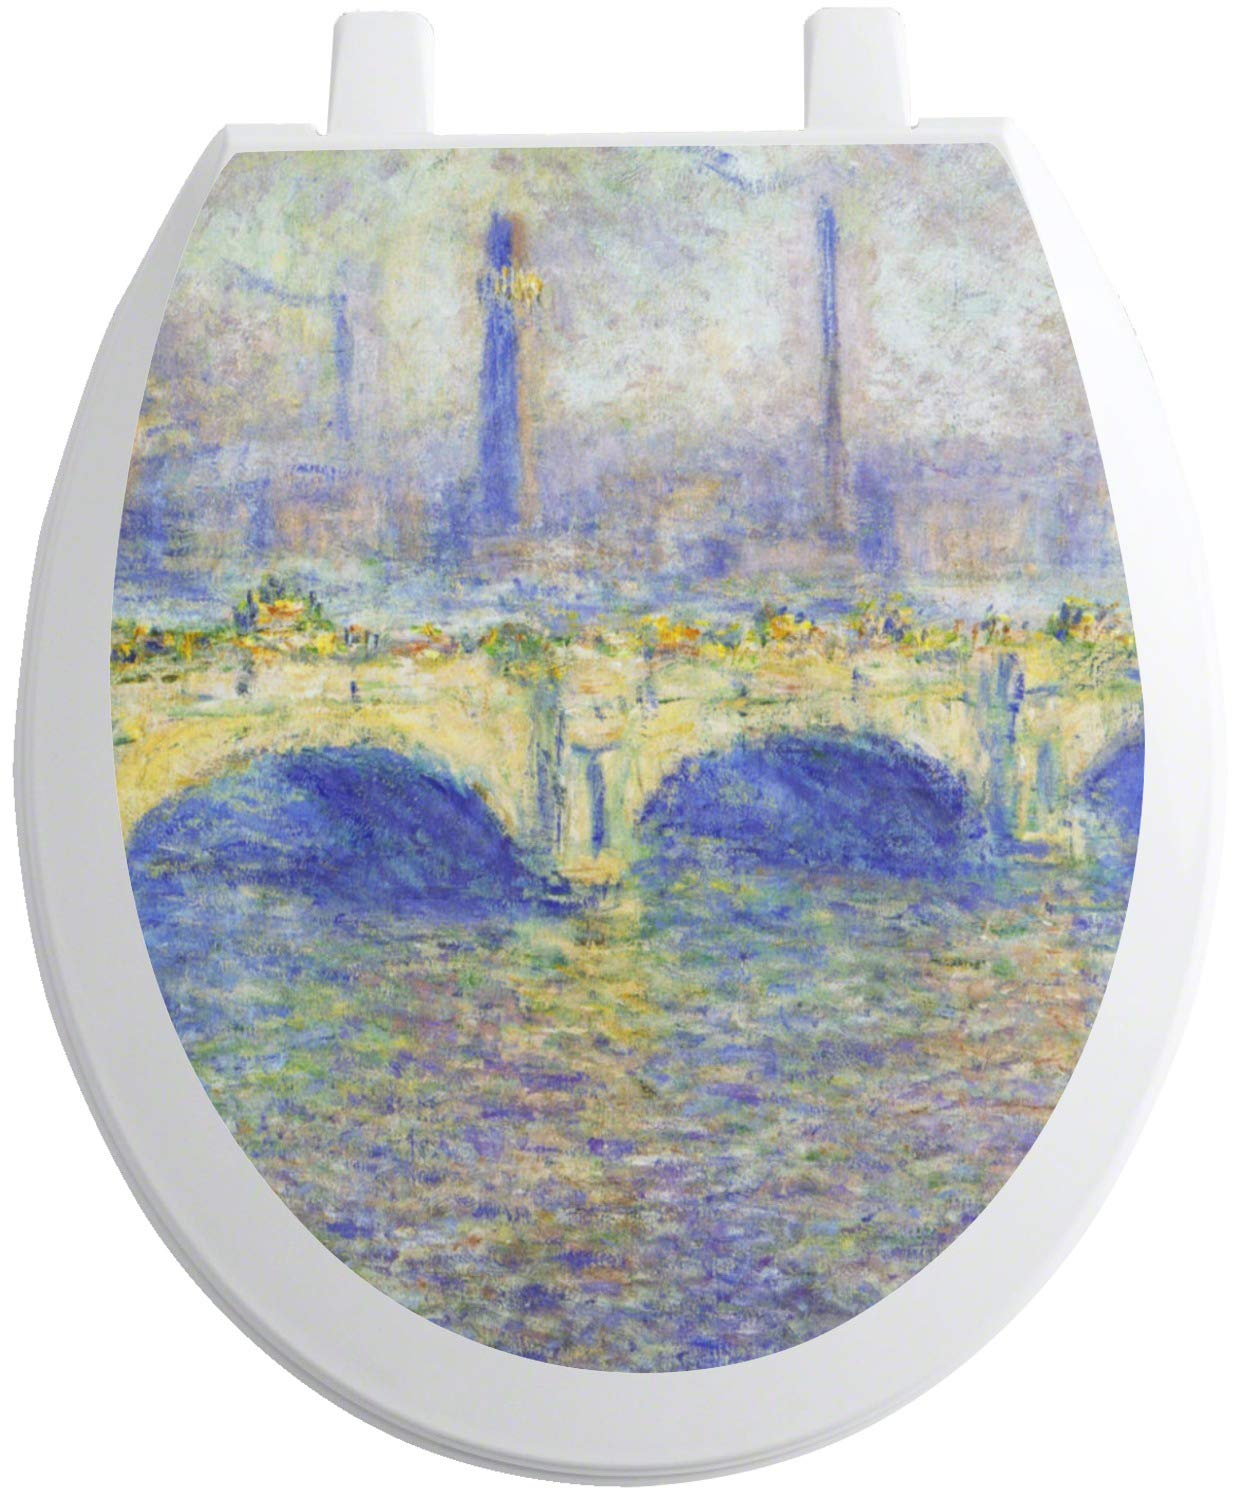 YouCustomizeIt Waterloo Bridge by Claude Monet Toilet Seat Decal - Round by YouCustomizeIt